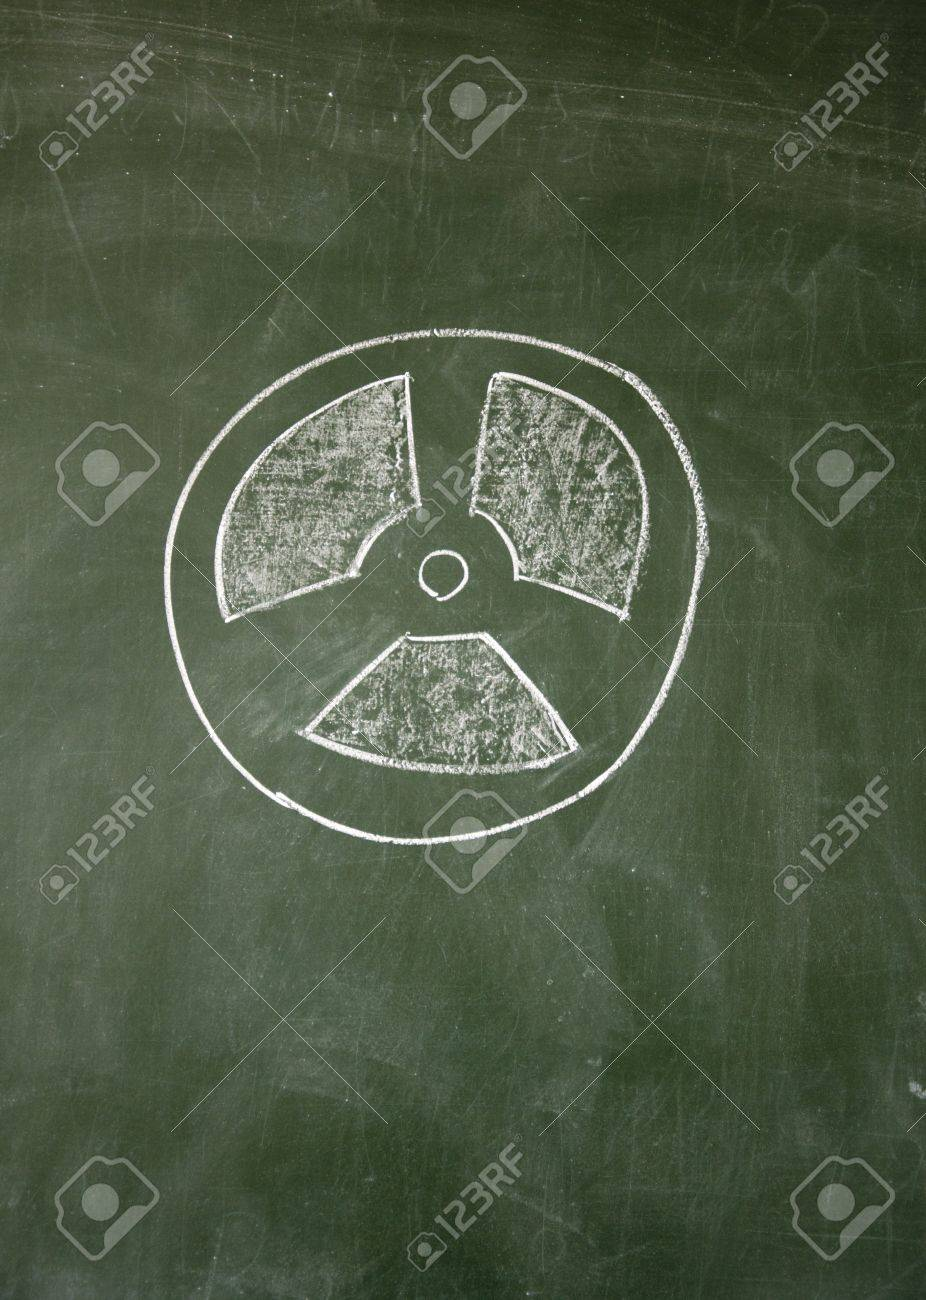 nuclear radiation sign drawn with chalk on blackboard Stock Photo - 12649394